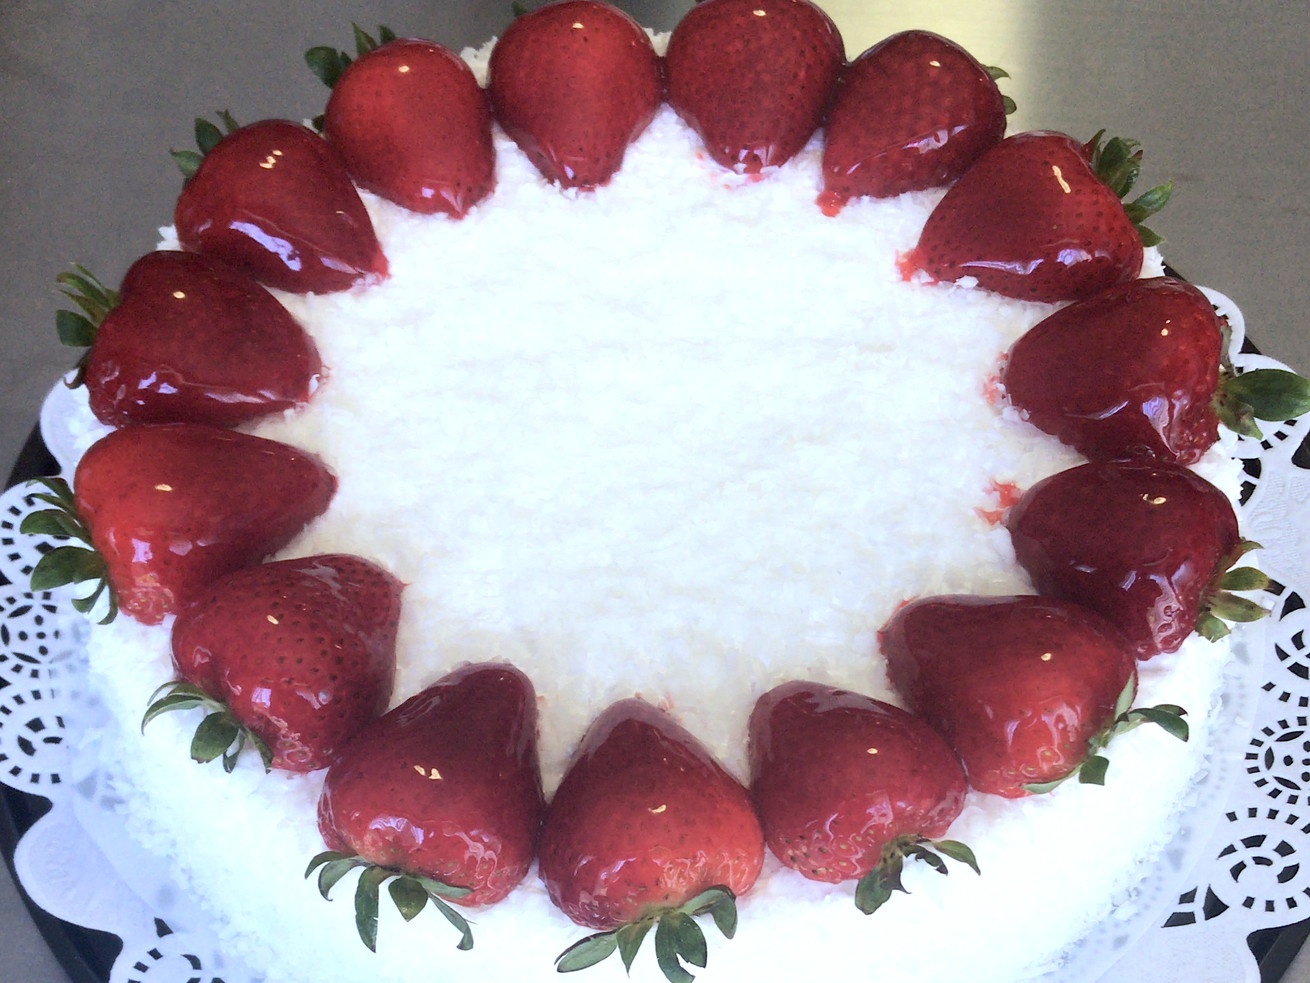 A coconut tres leches cake.